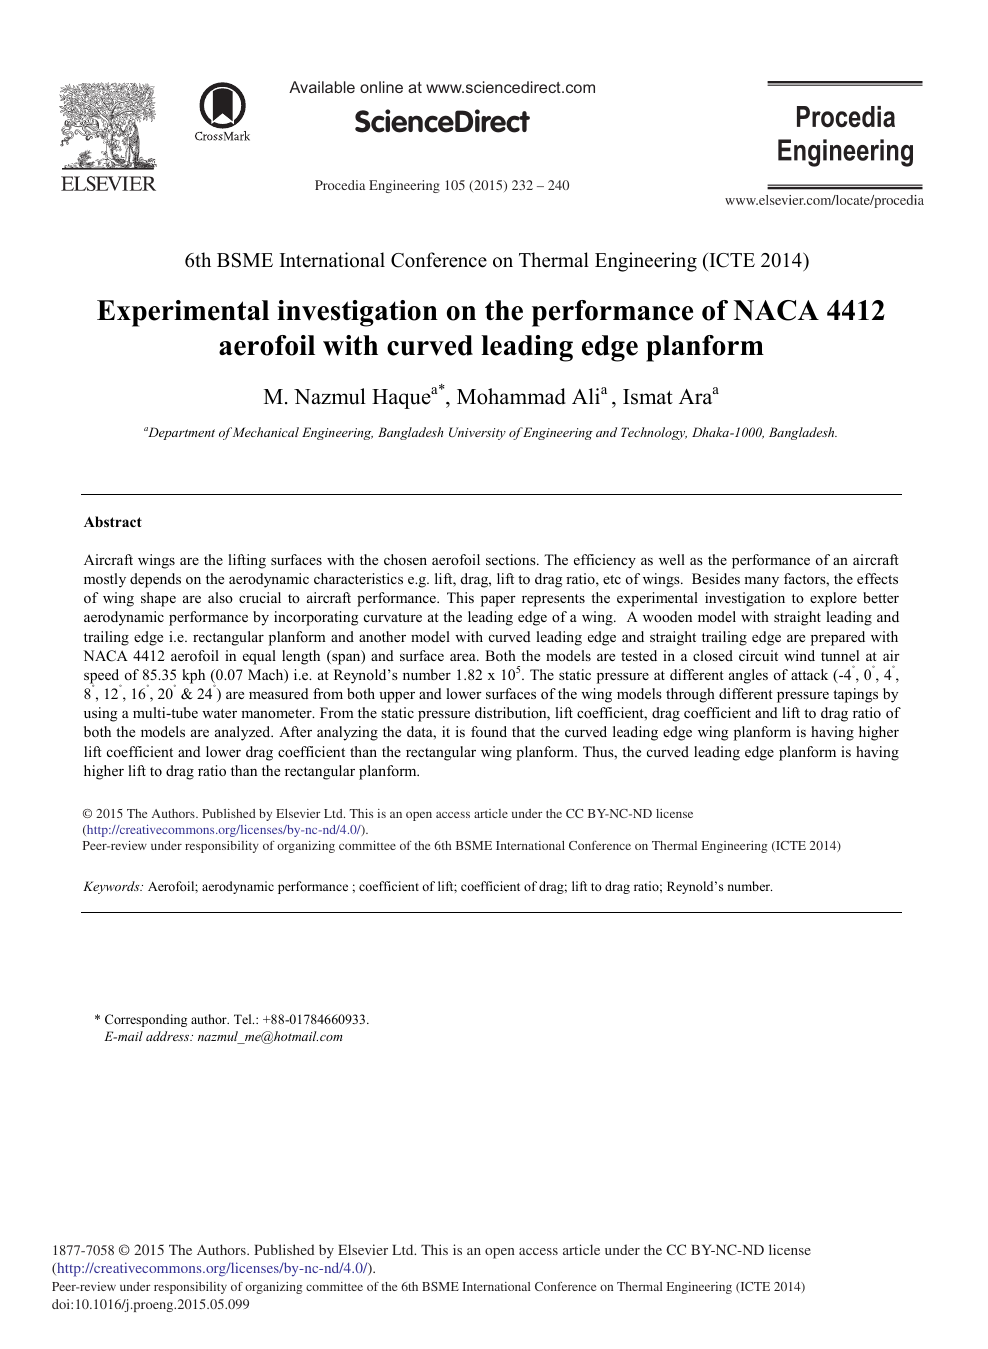 Experimental Investigation on the Performance of NACA 4412